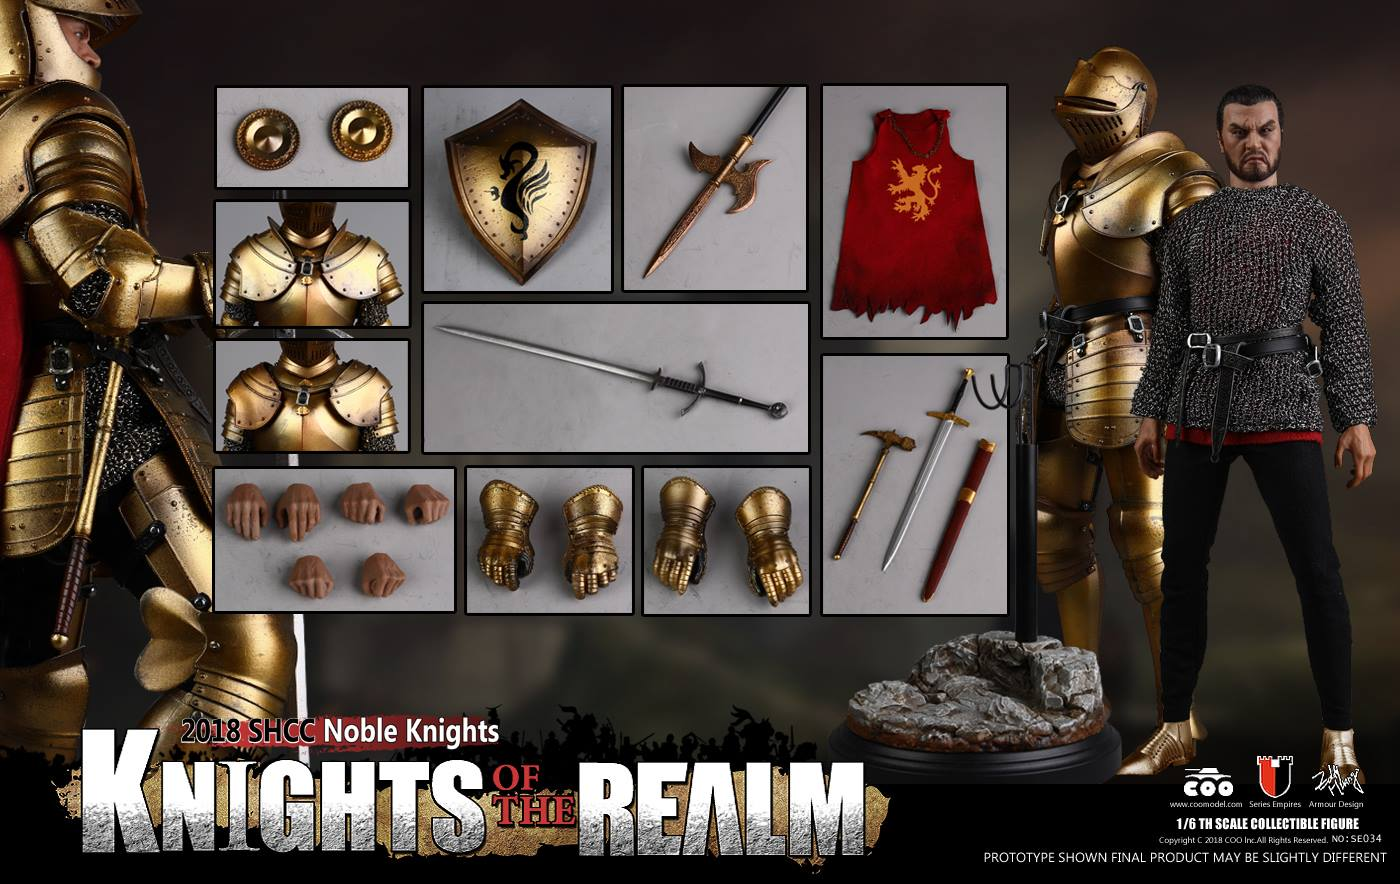 coo-knights06